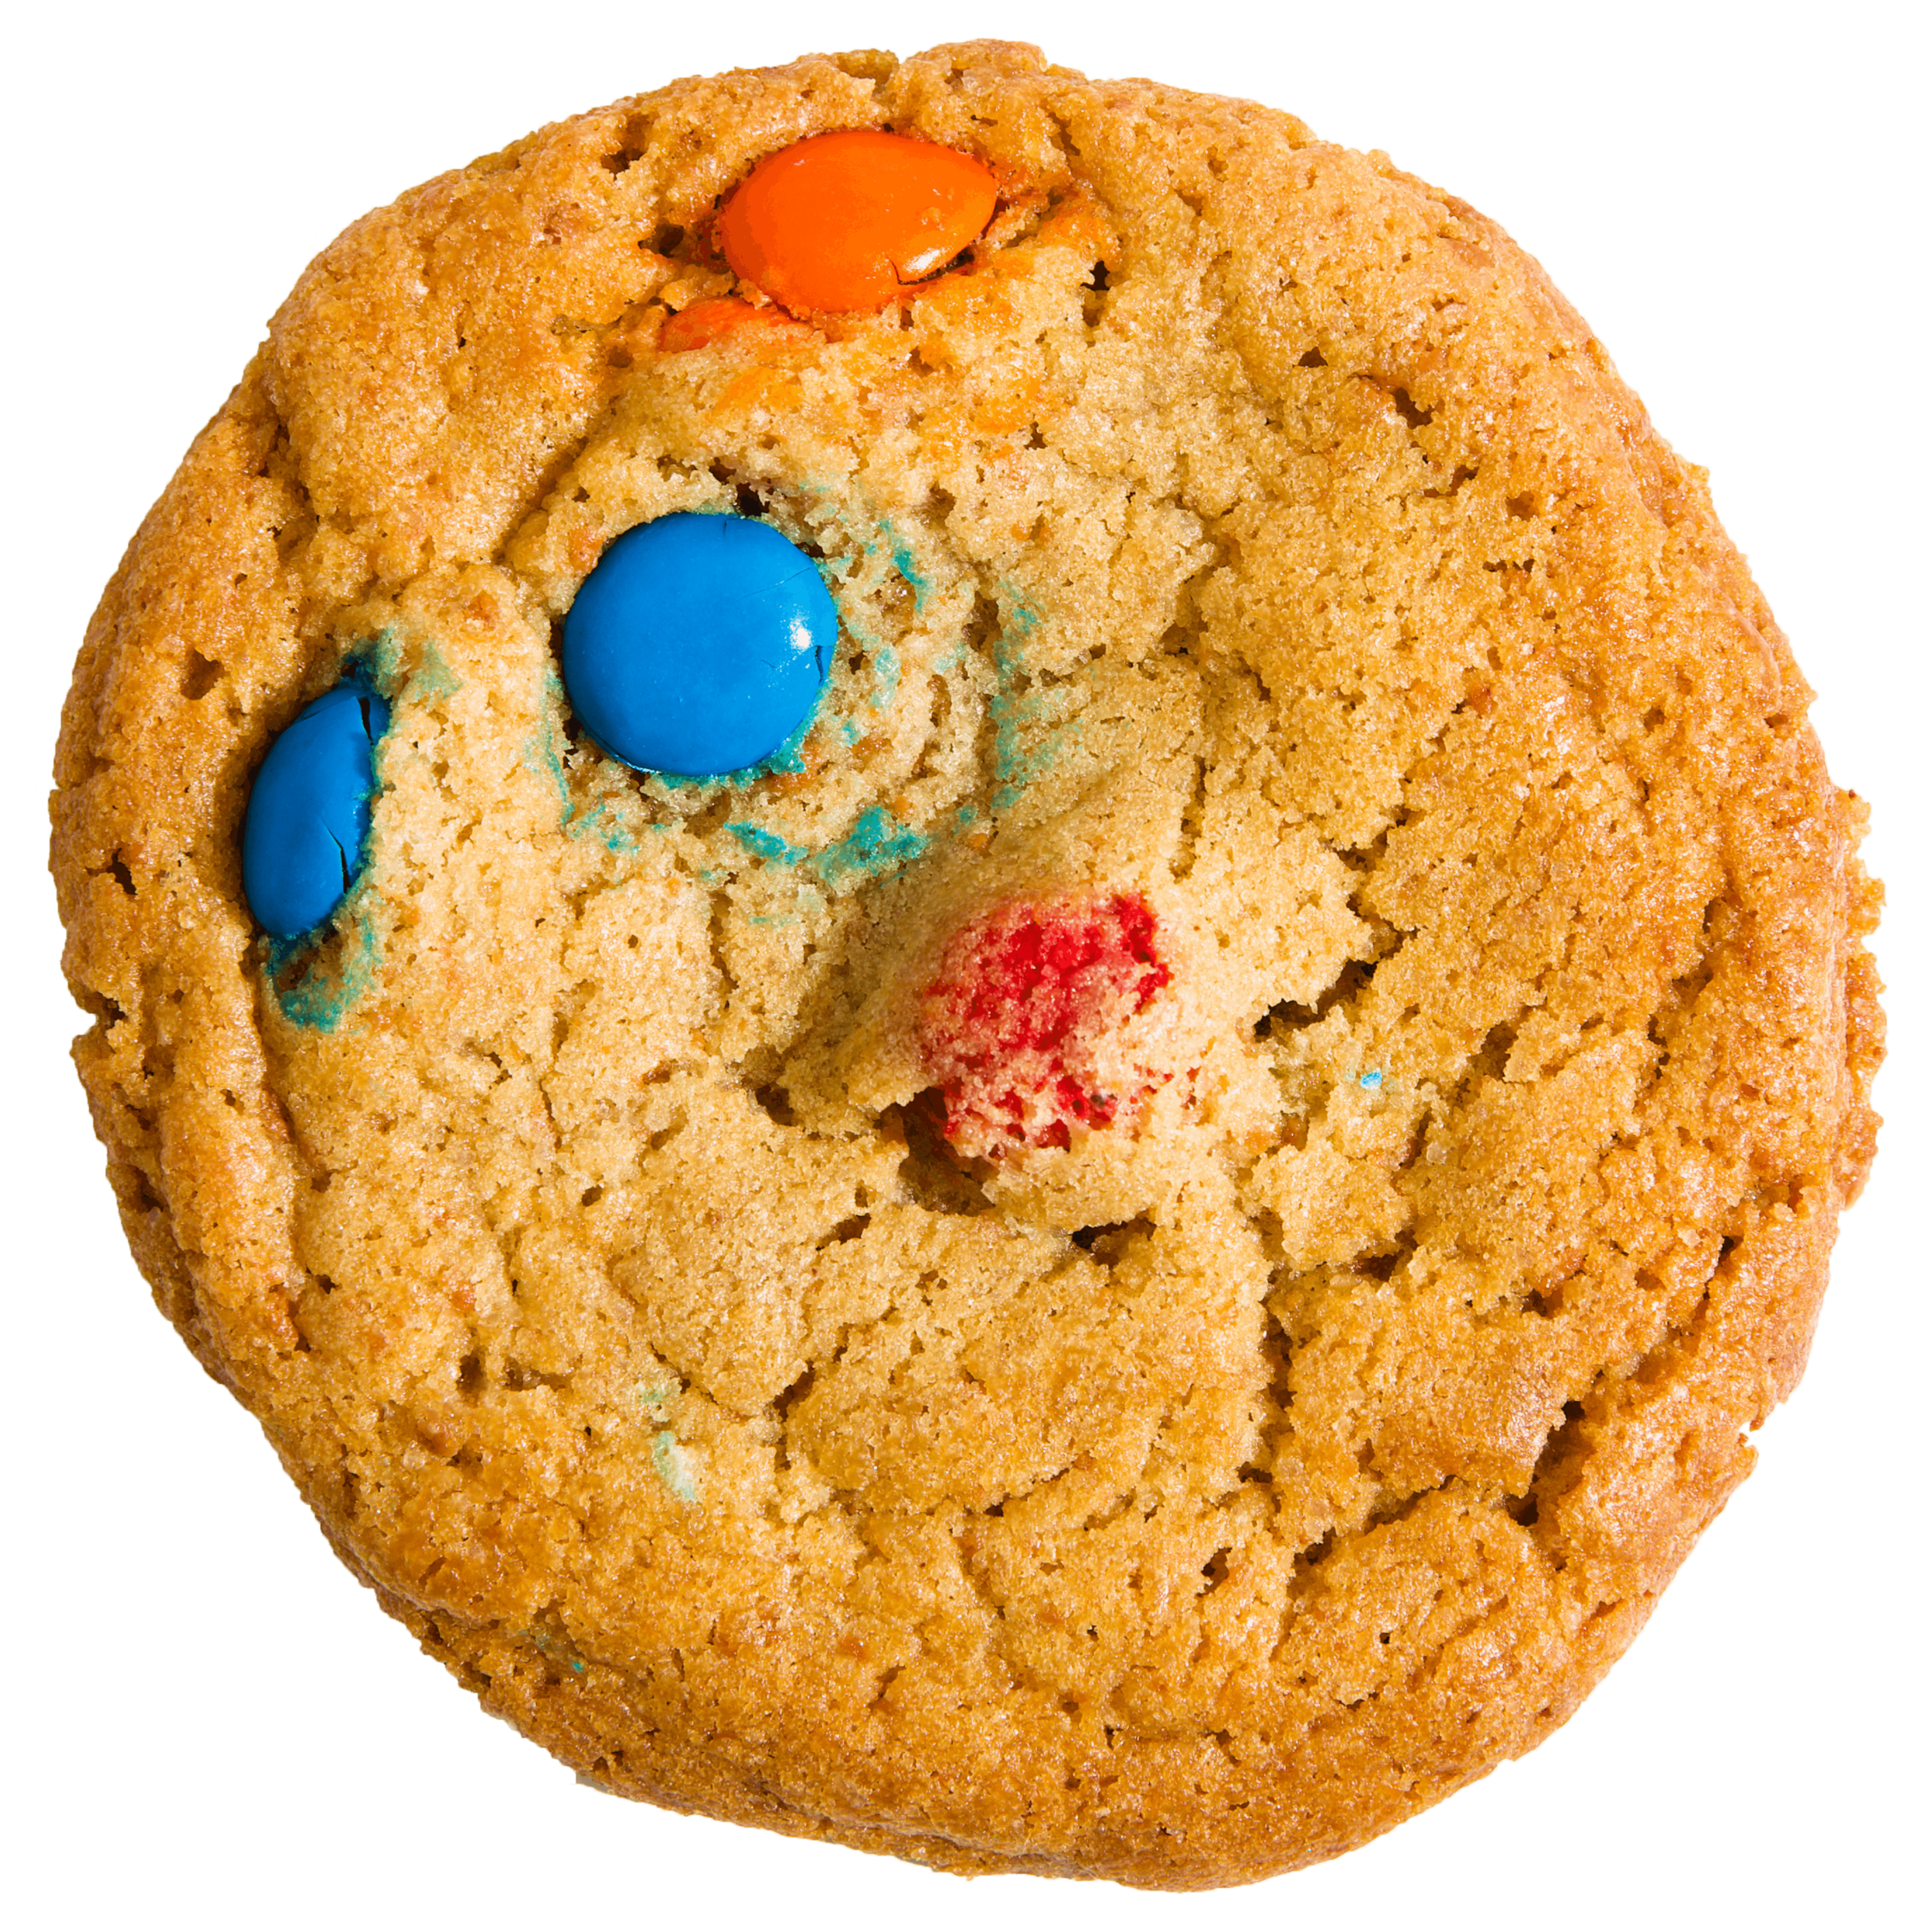 Some things never get old. Like this classic M&M cookie. No frills. No freaky. Just a good cookie.